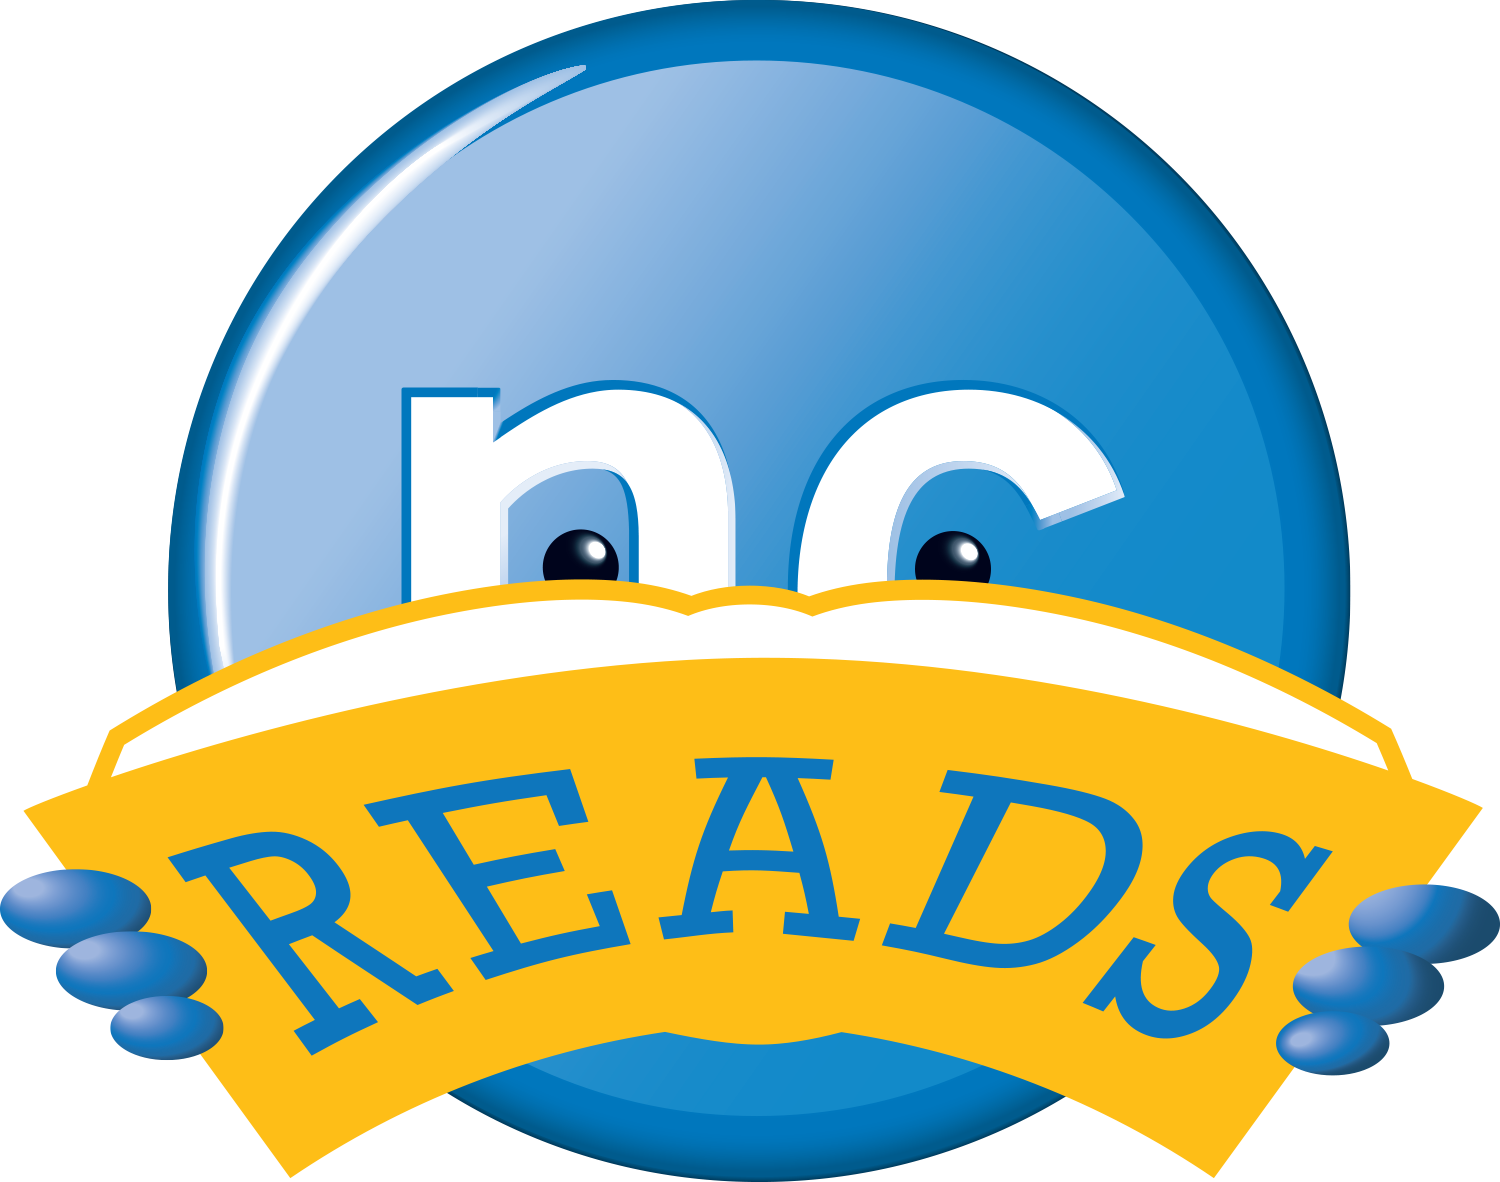 ncreads one college, one book open book clip art